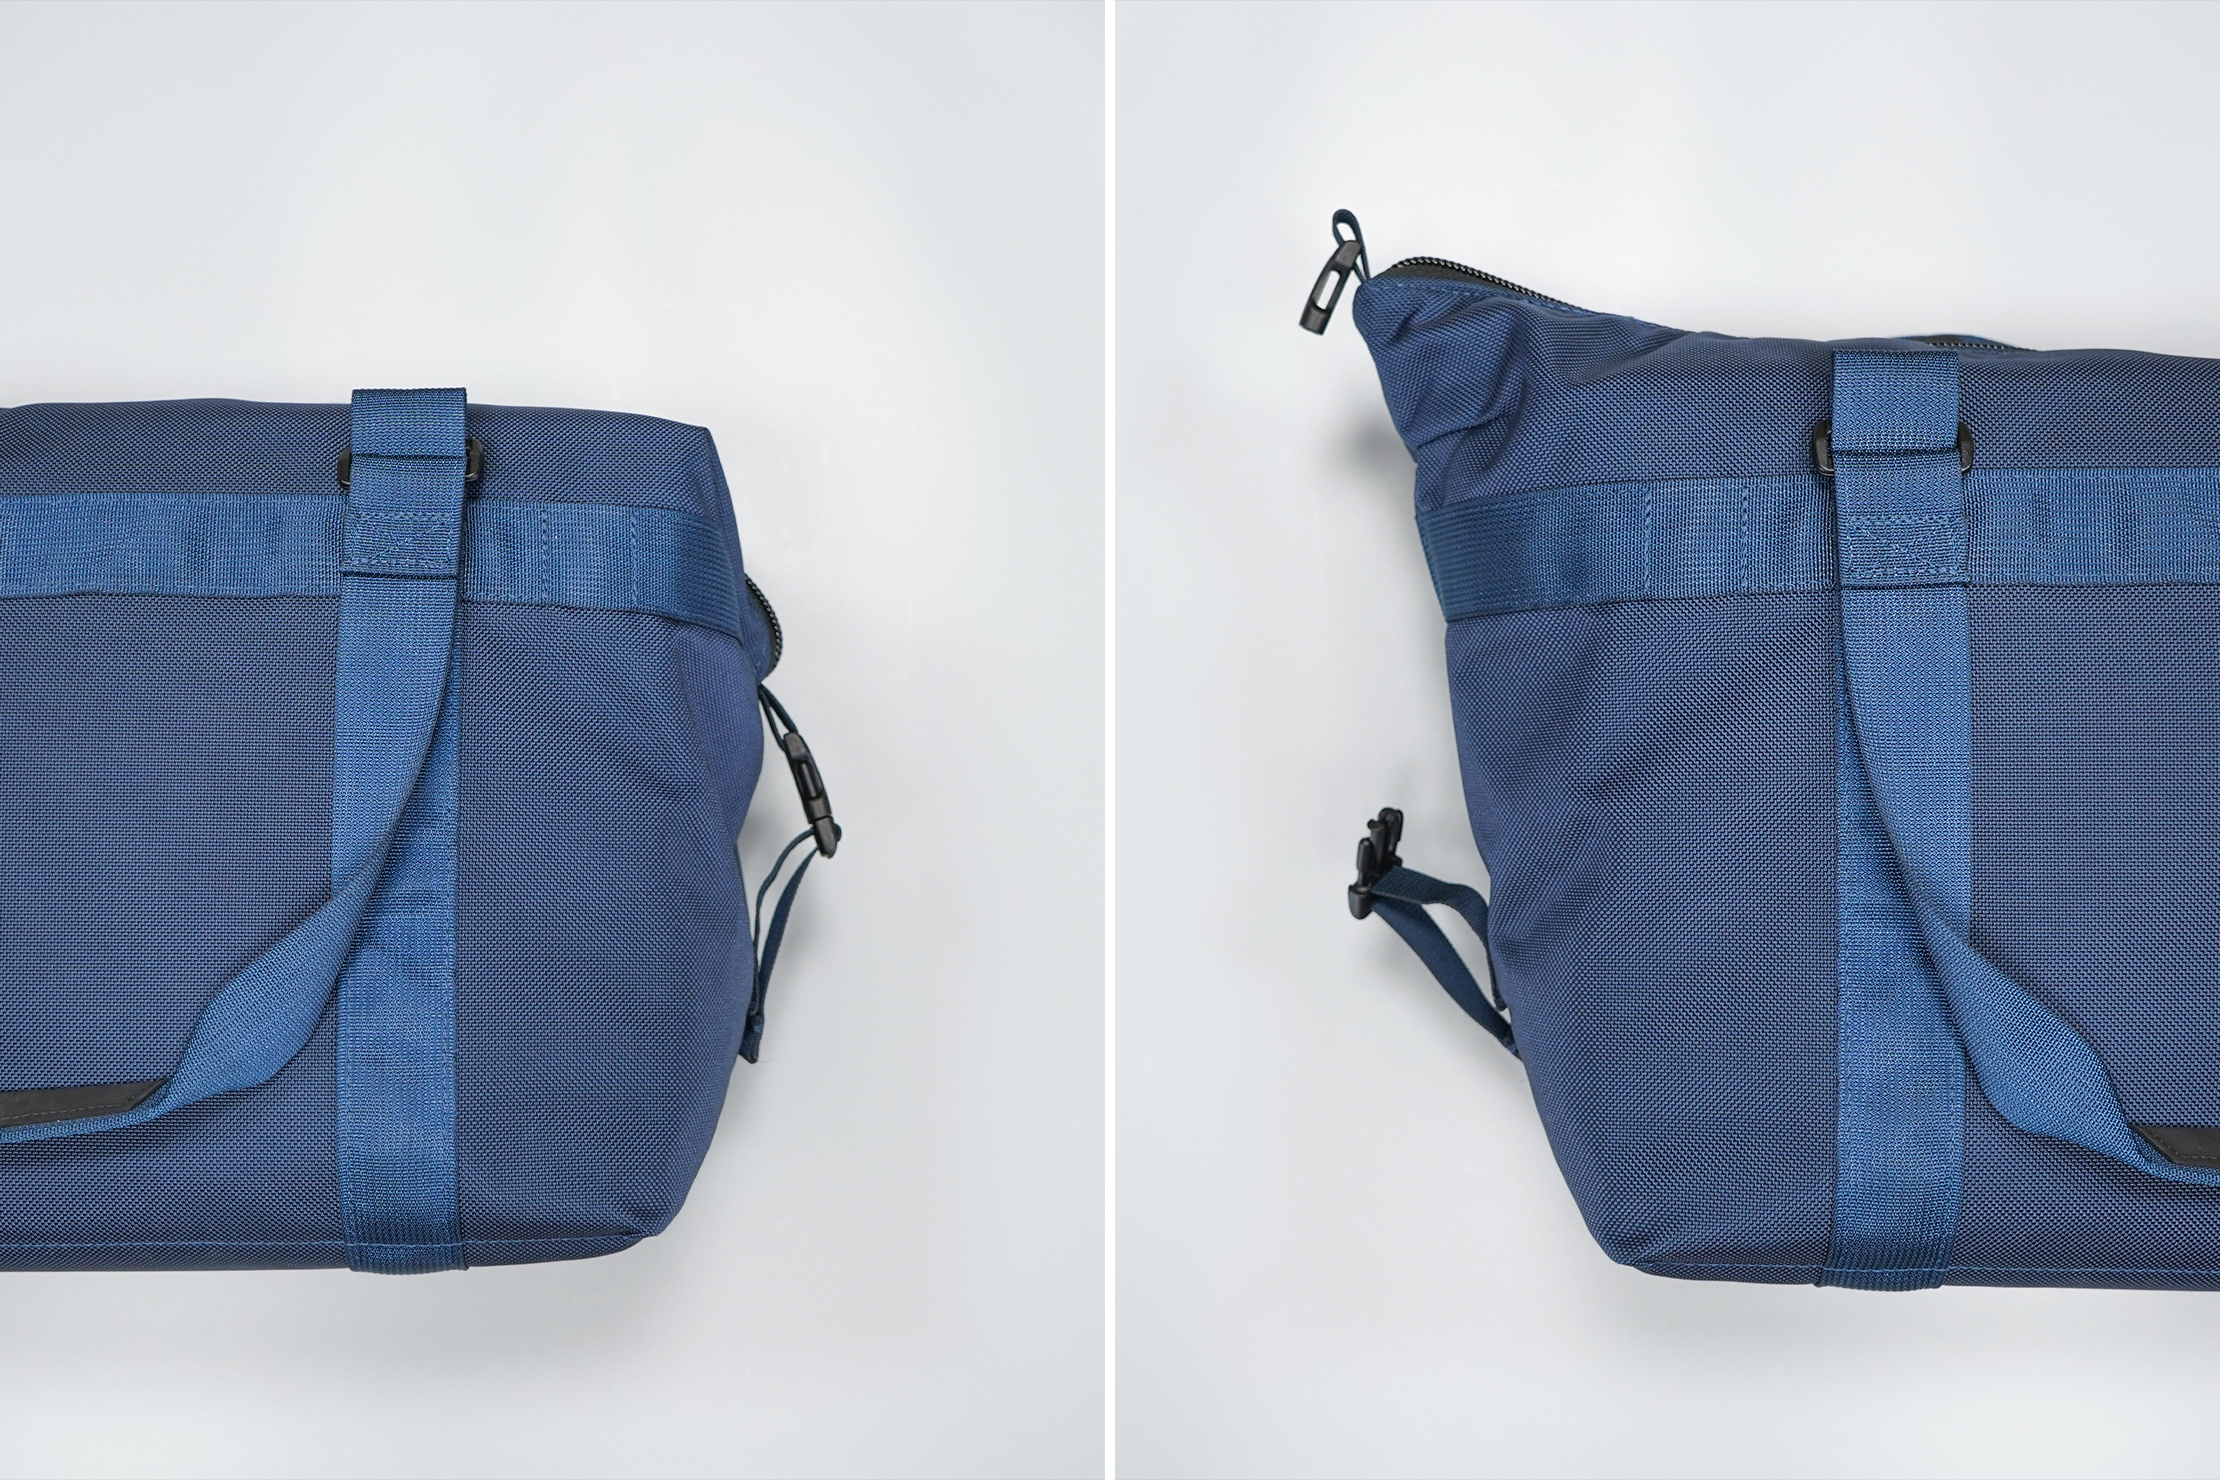 DSPTCH Utility Tote | Now it's rounded, then it's pointy! Magic